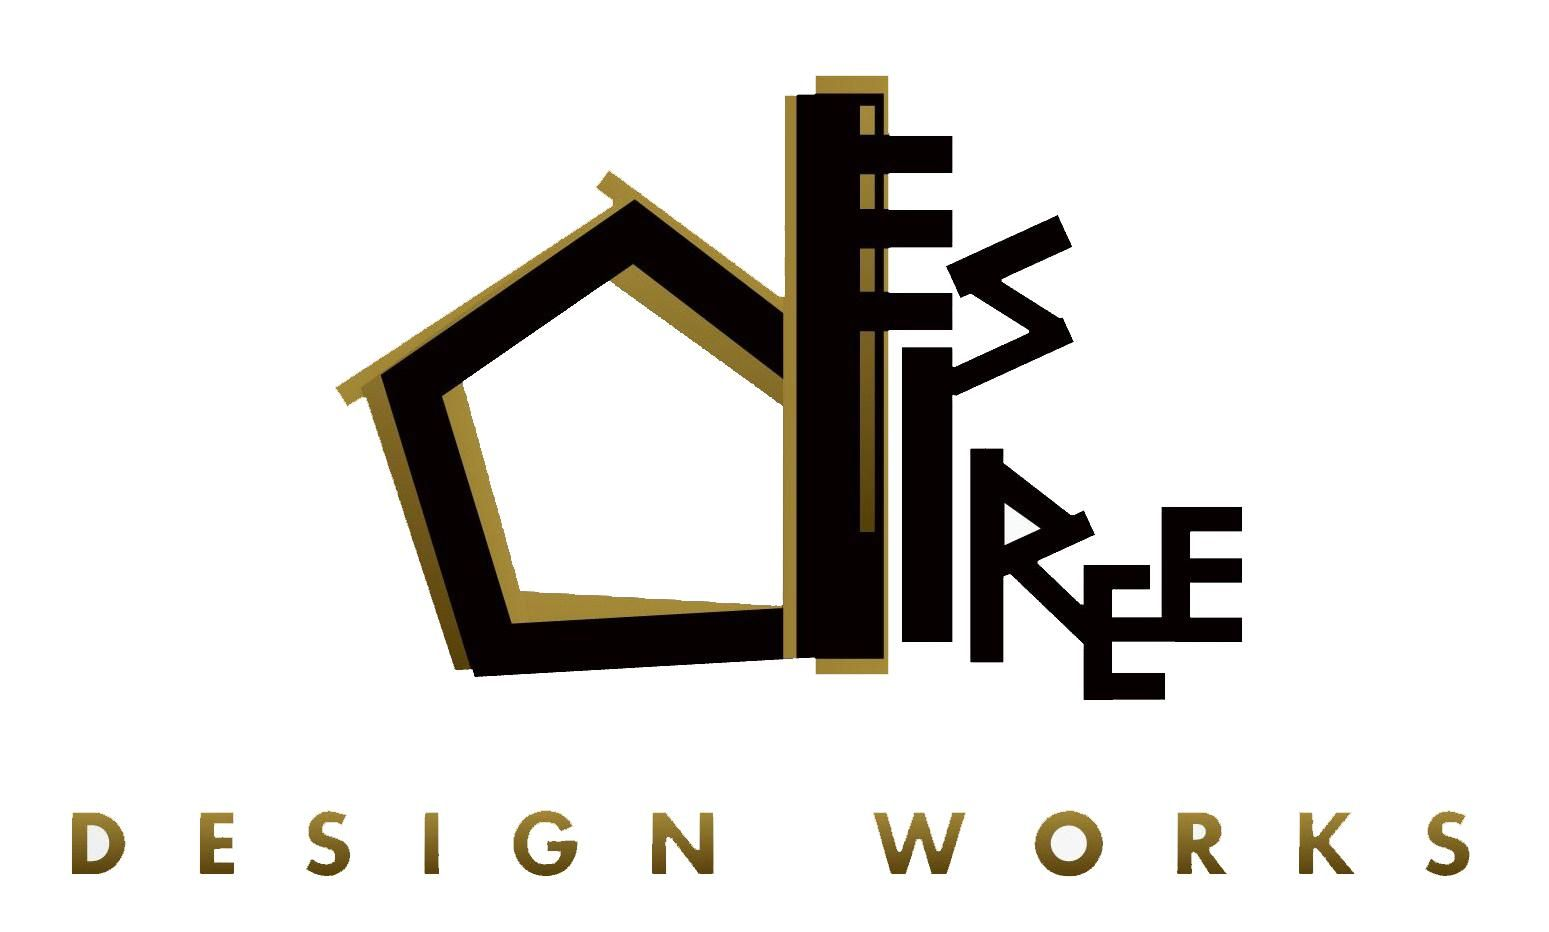 Desiree logo home interior design company pinterest for Interior designs logos